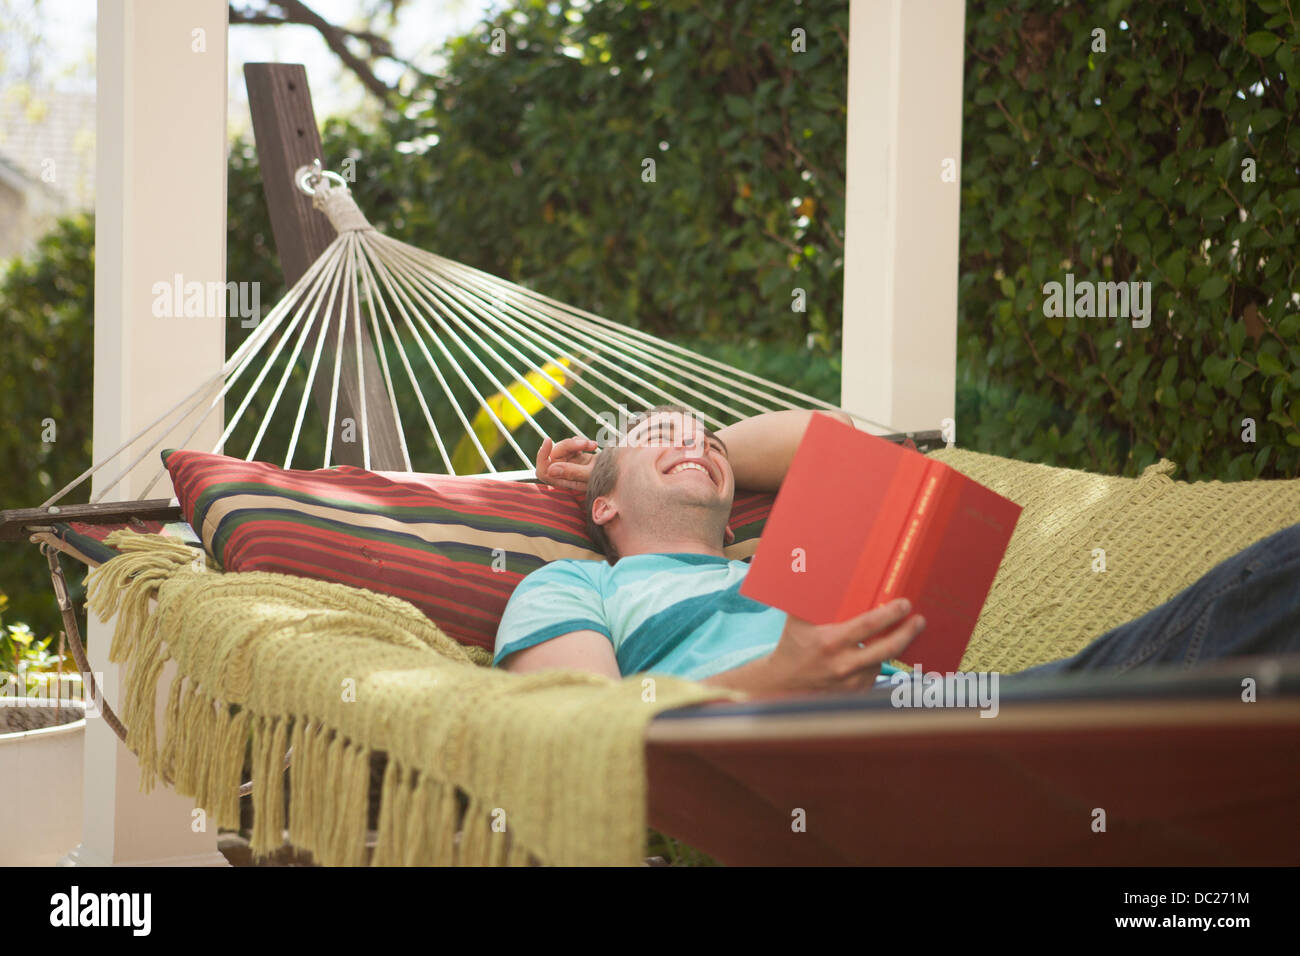 Young man reading book in hammock, laughing - Stock Image